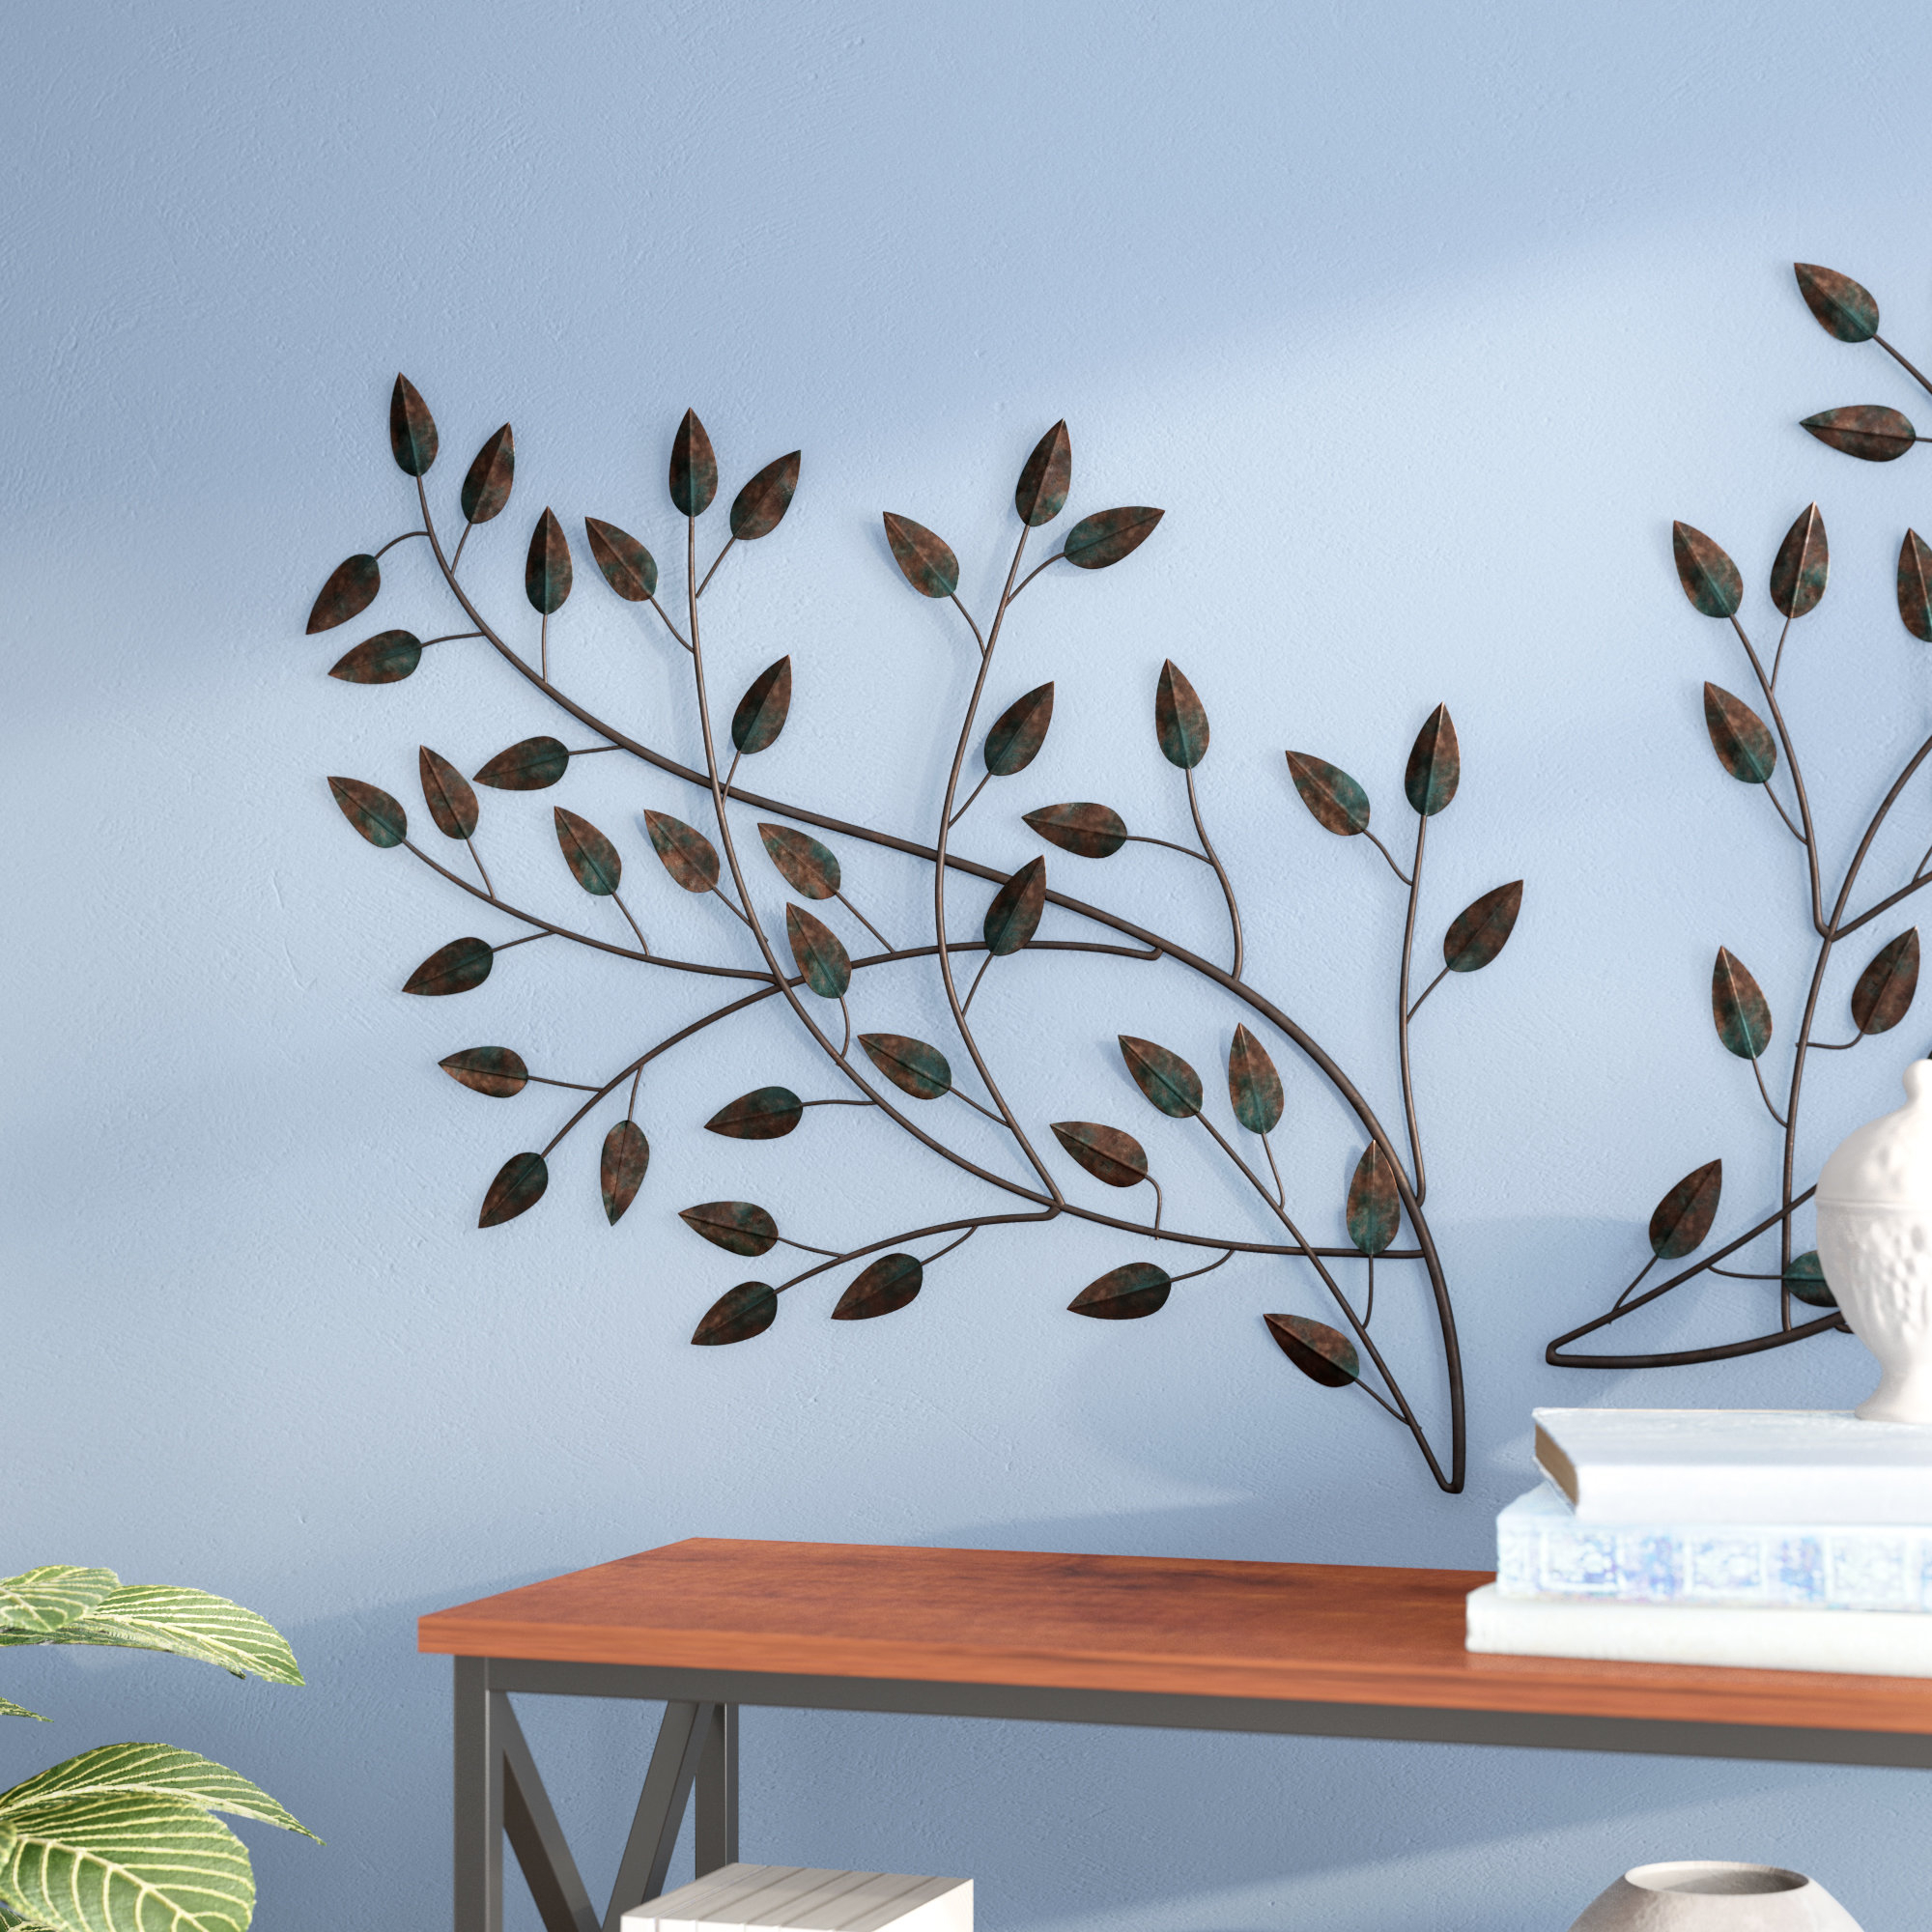 Blowing Leaves Wall Décor Inside Desford Leaf Wall Decor (View 12 of 30)